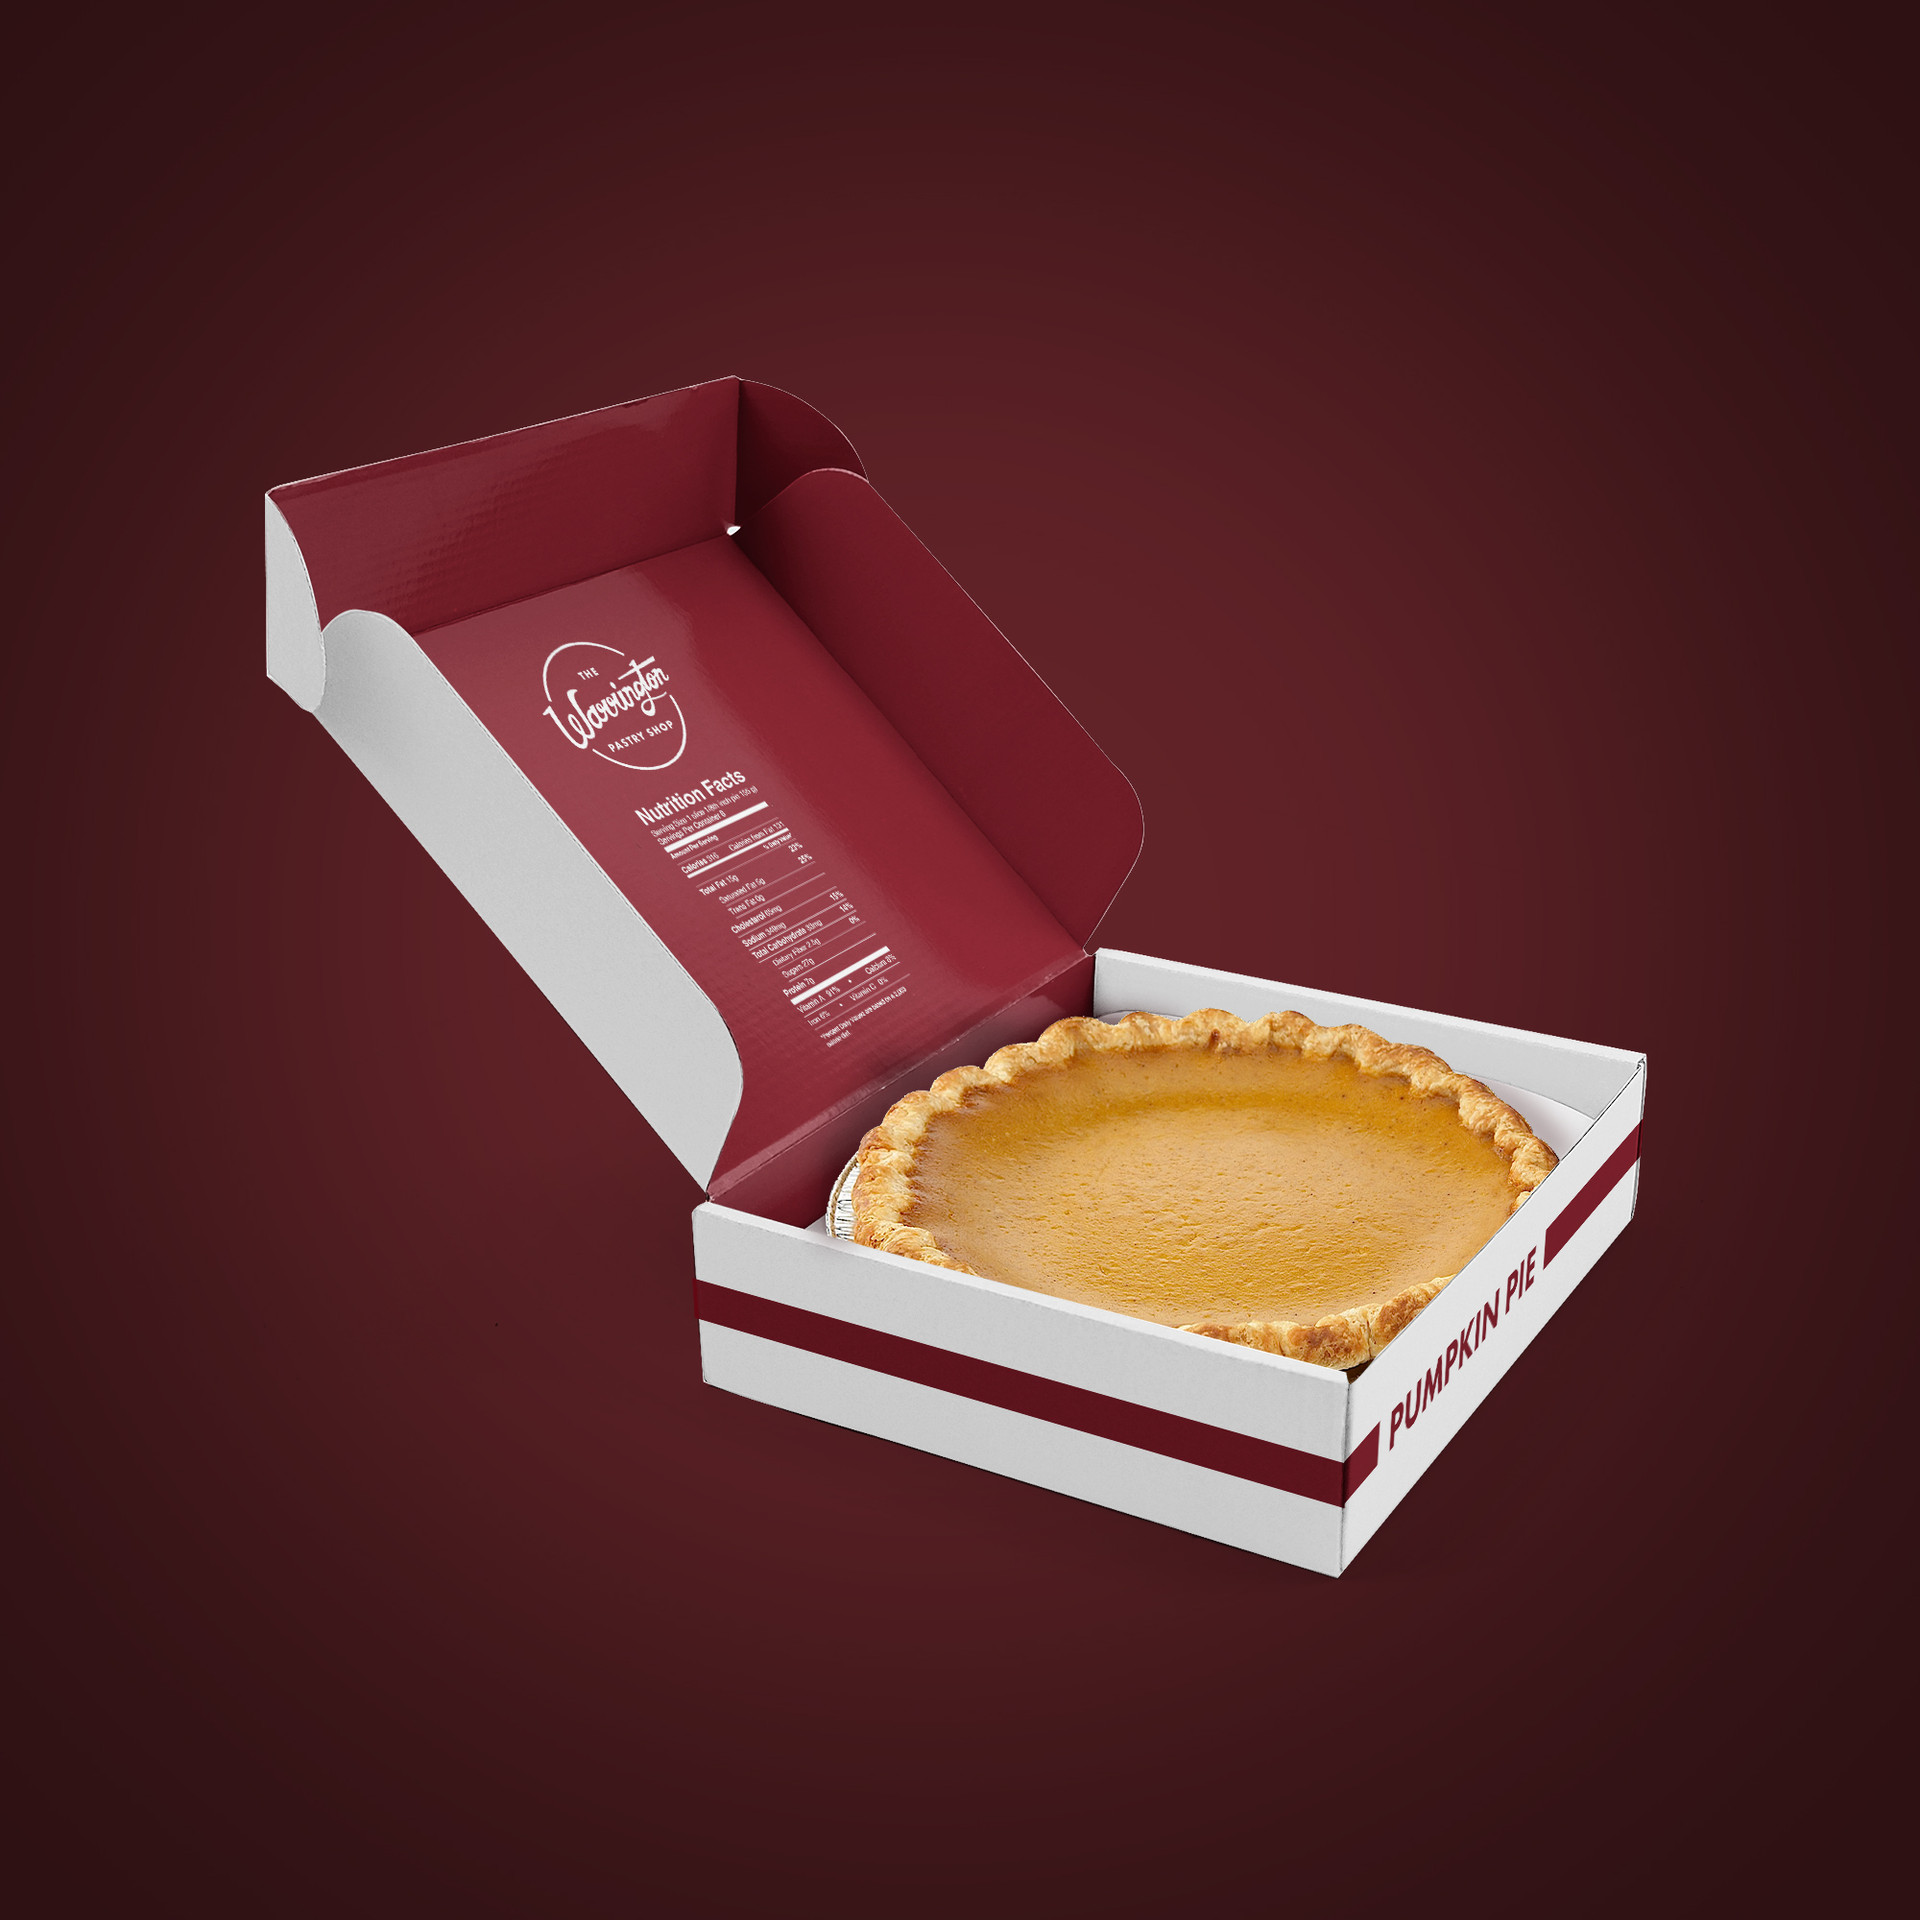 WARRINGTON PASTRY PIE PACKAGING 1.jpg